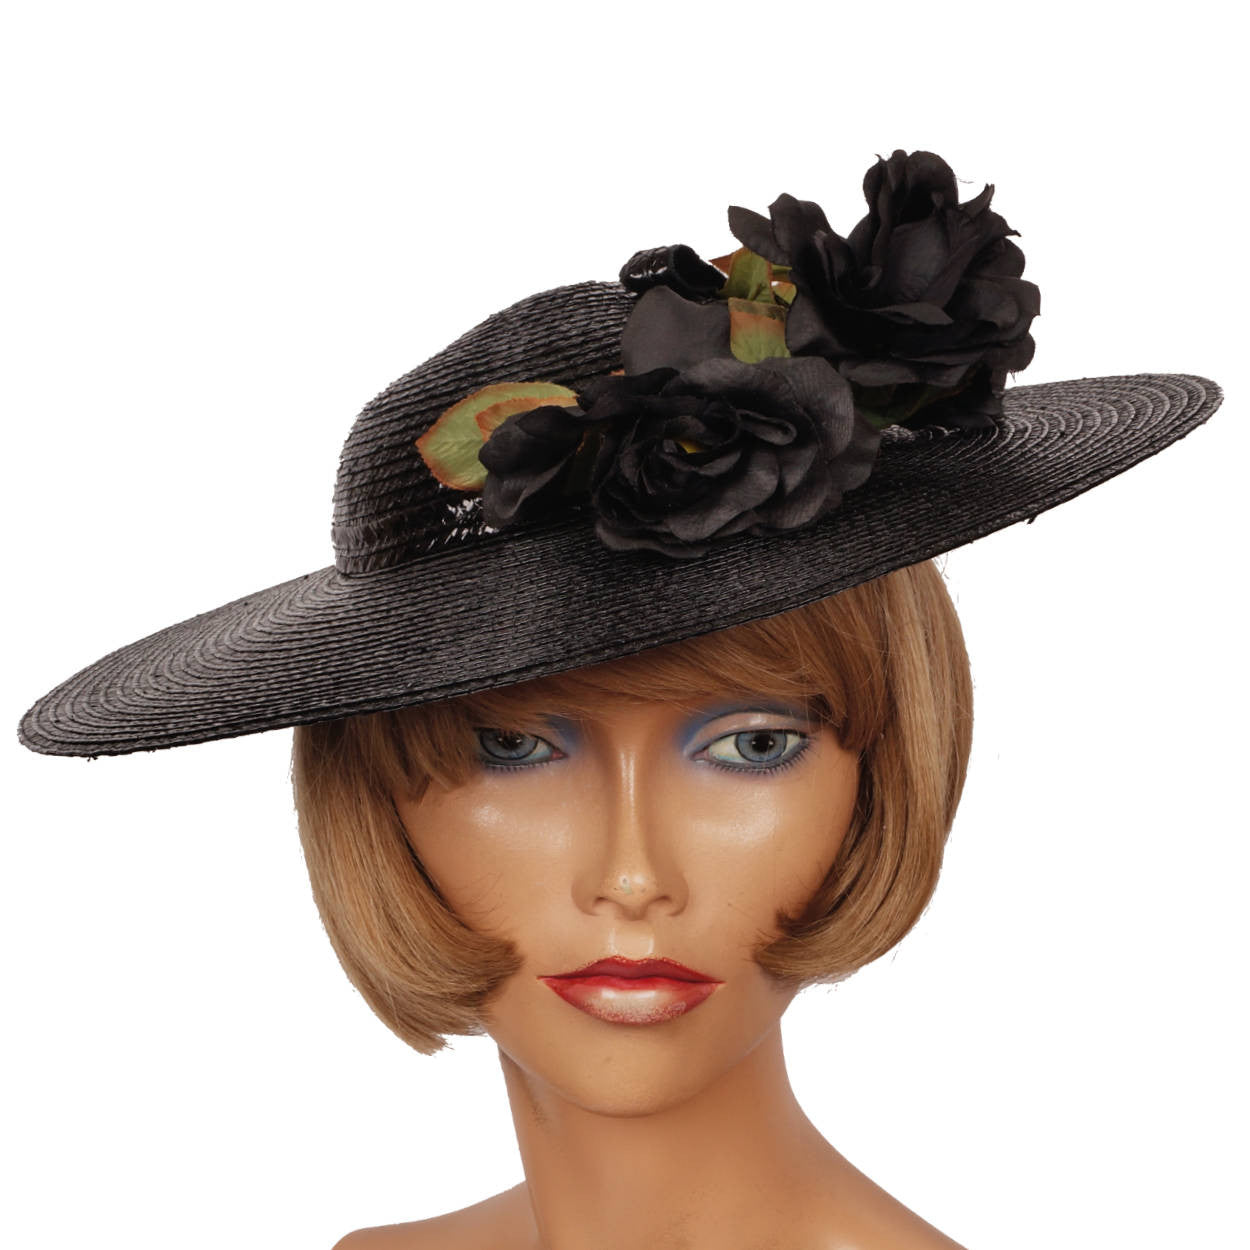 Vintage Adolfo II Black Straw Wide Brim Ladies Hat Size Medium d4451dbada5